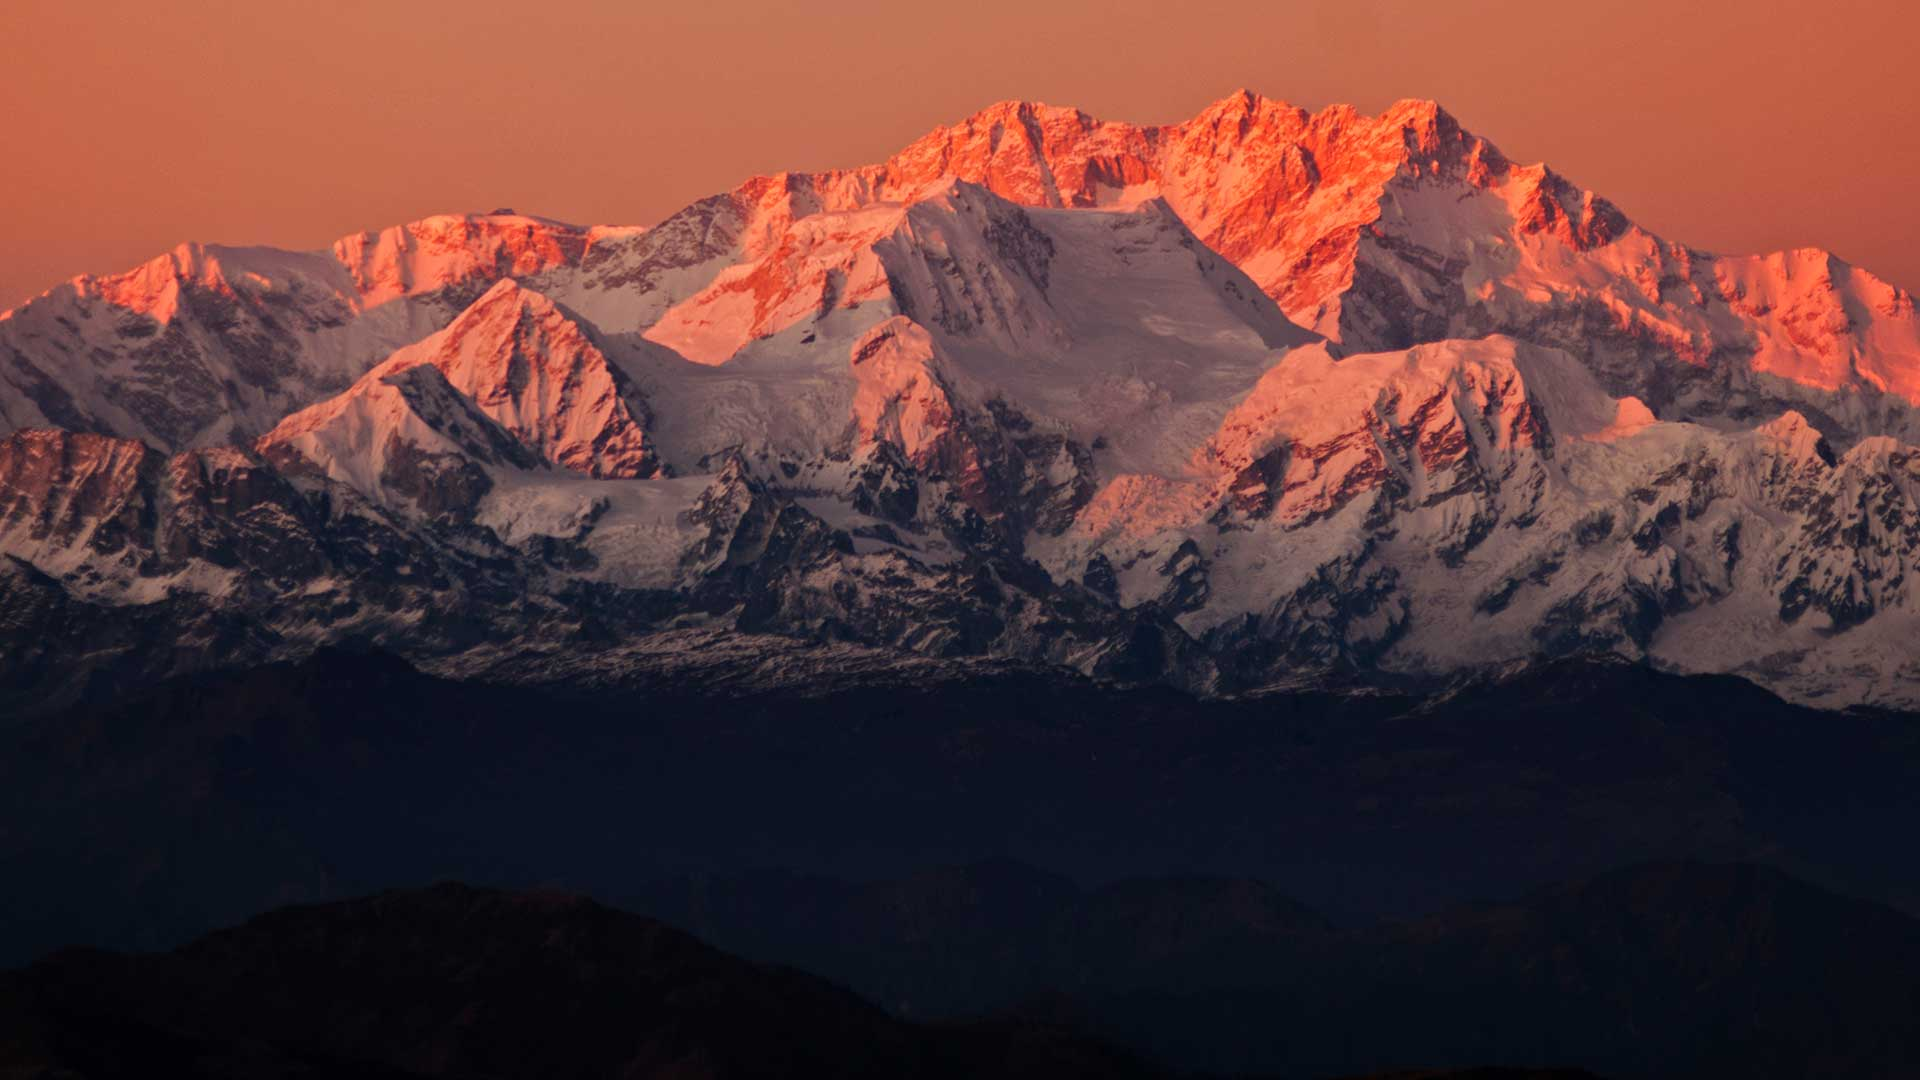 View of snowcapped Kangchenjunga in West Bengal, India